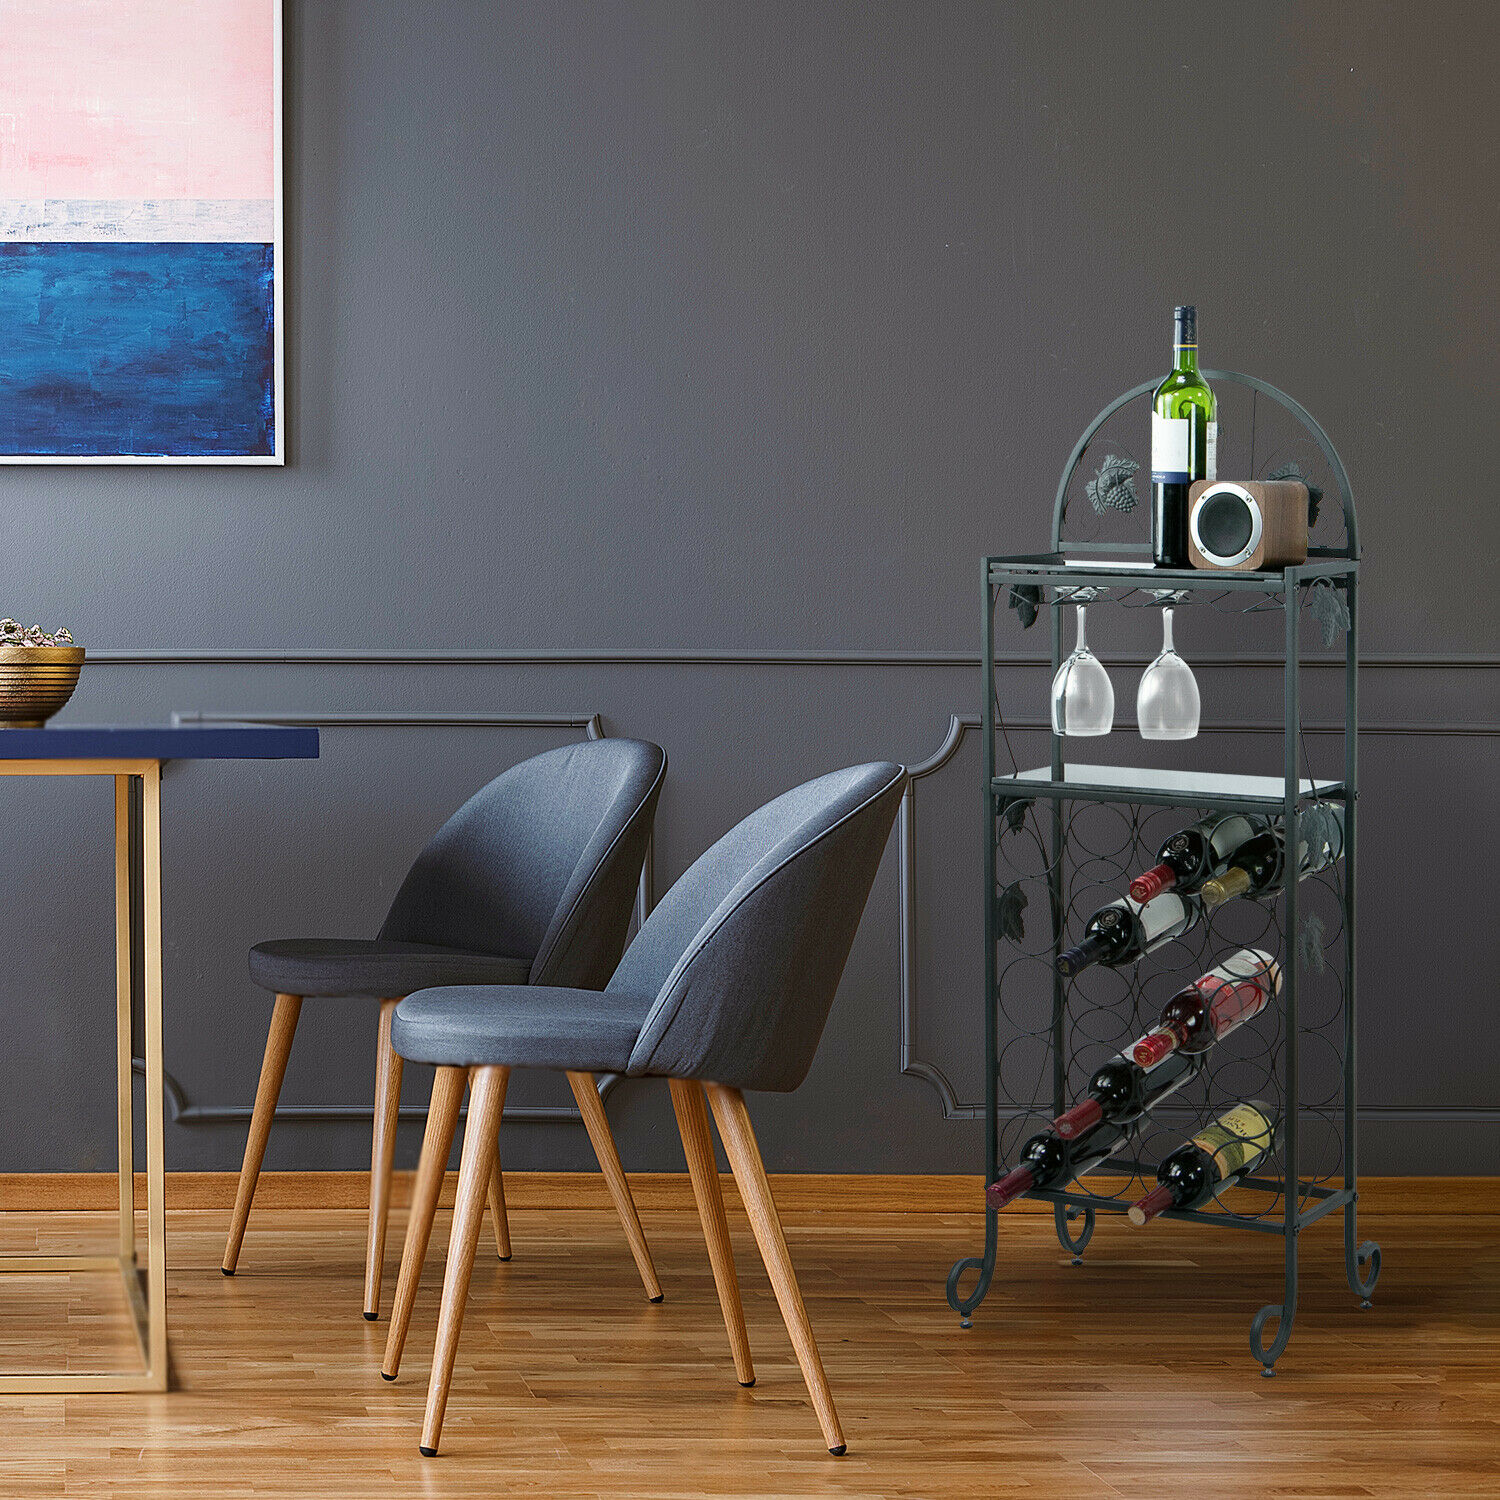 20 Wine Rack Table with Glass, Freestanding Floor Table with Marble Finish Top